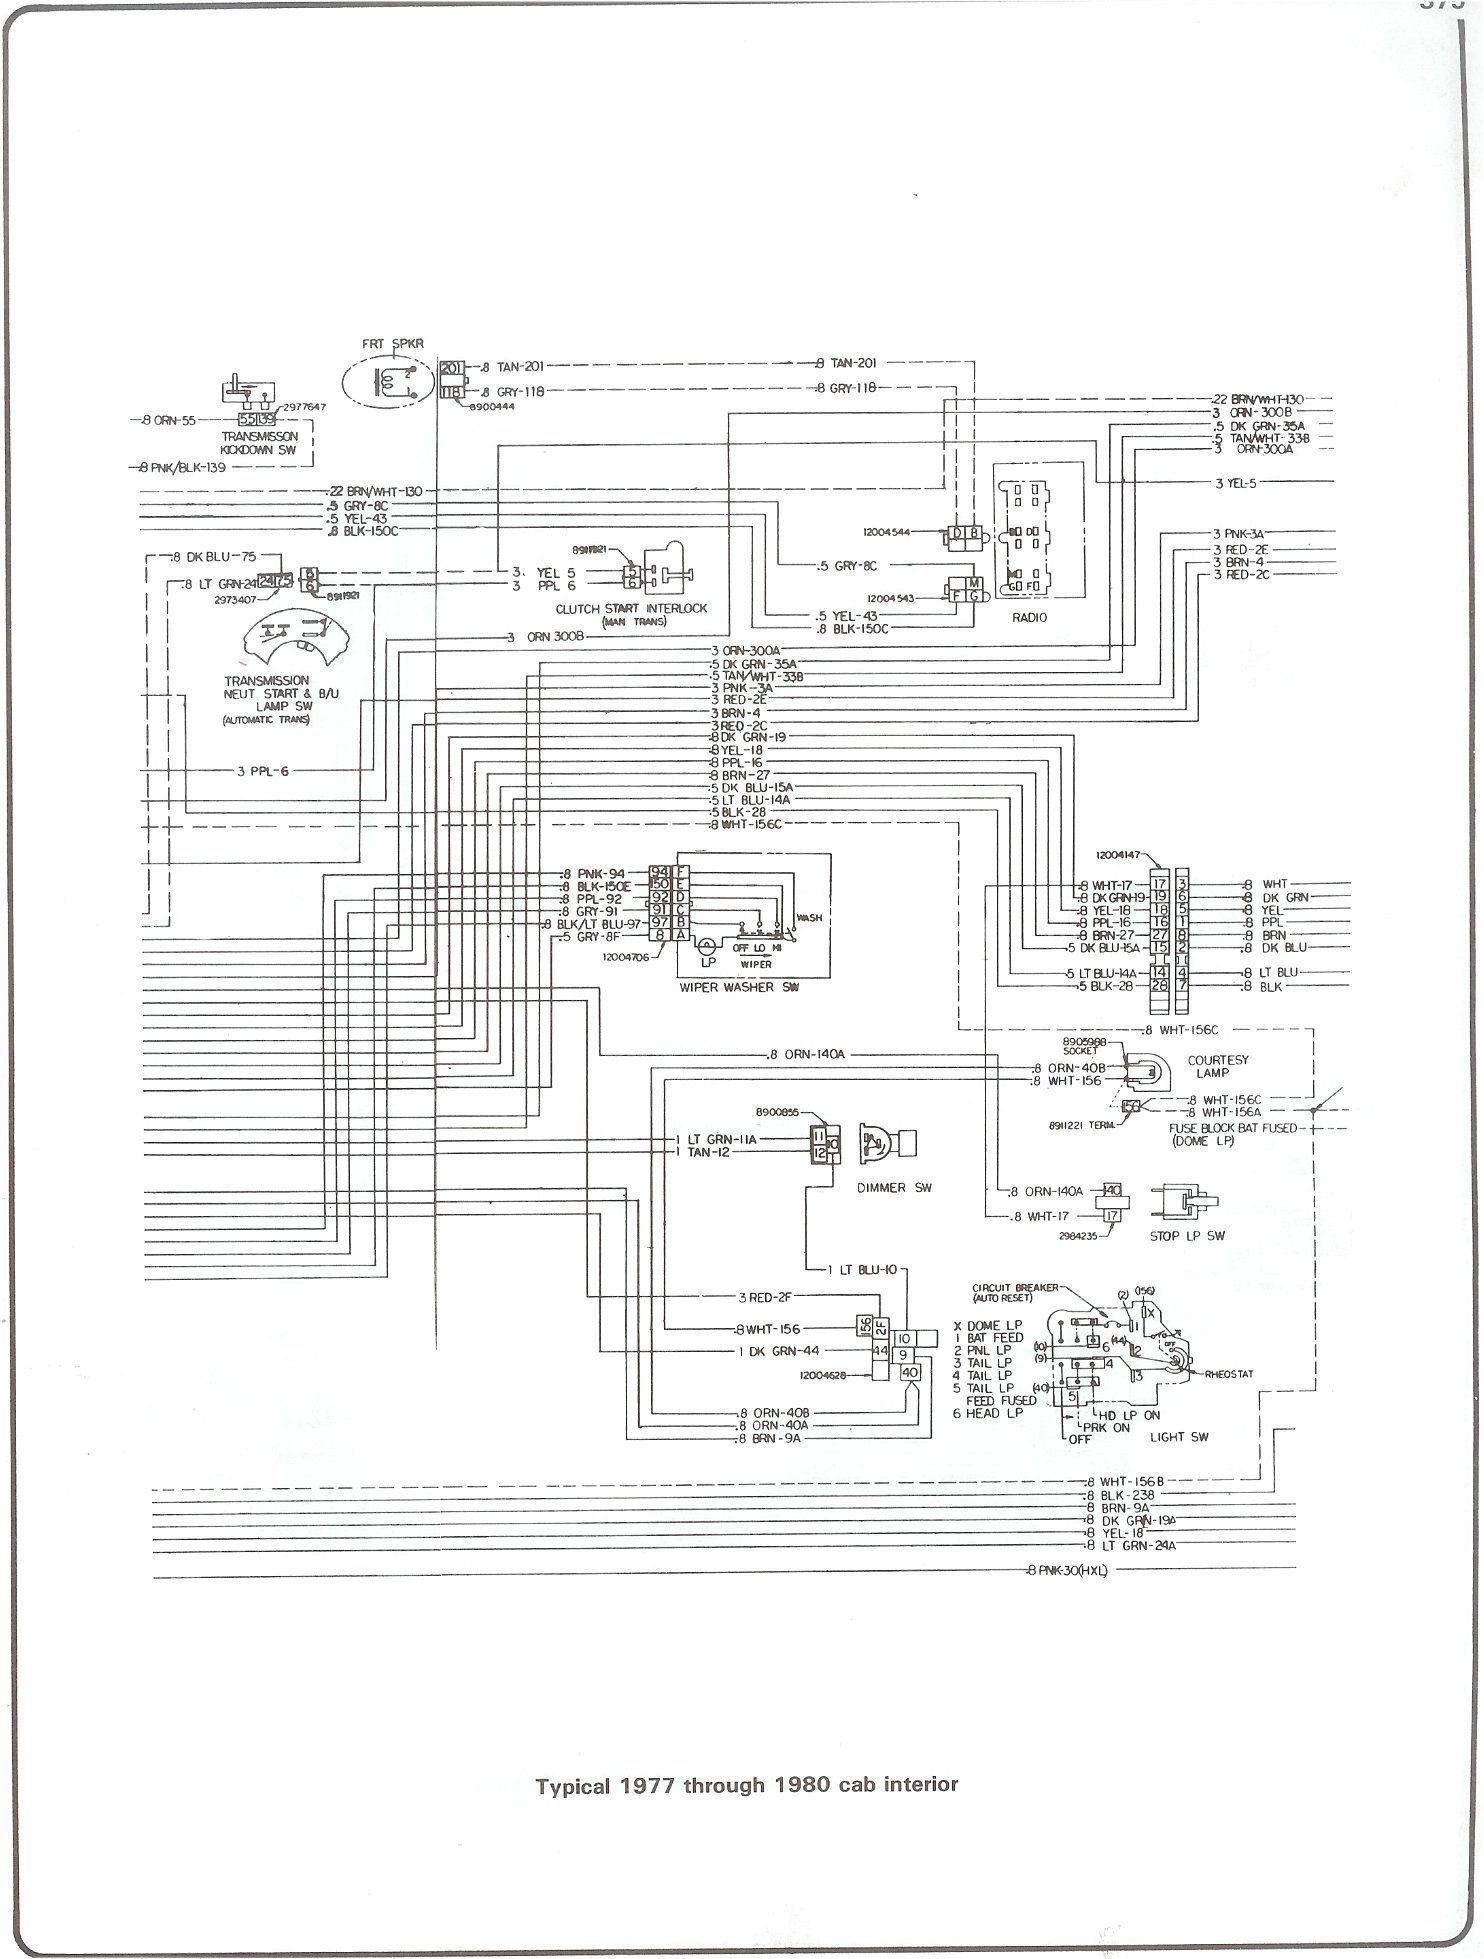 complete 73 87 wiring diagrams 1978 Ford F-250 Wiring Diagram 1969 F100 Wiring  Harness